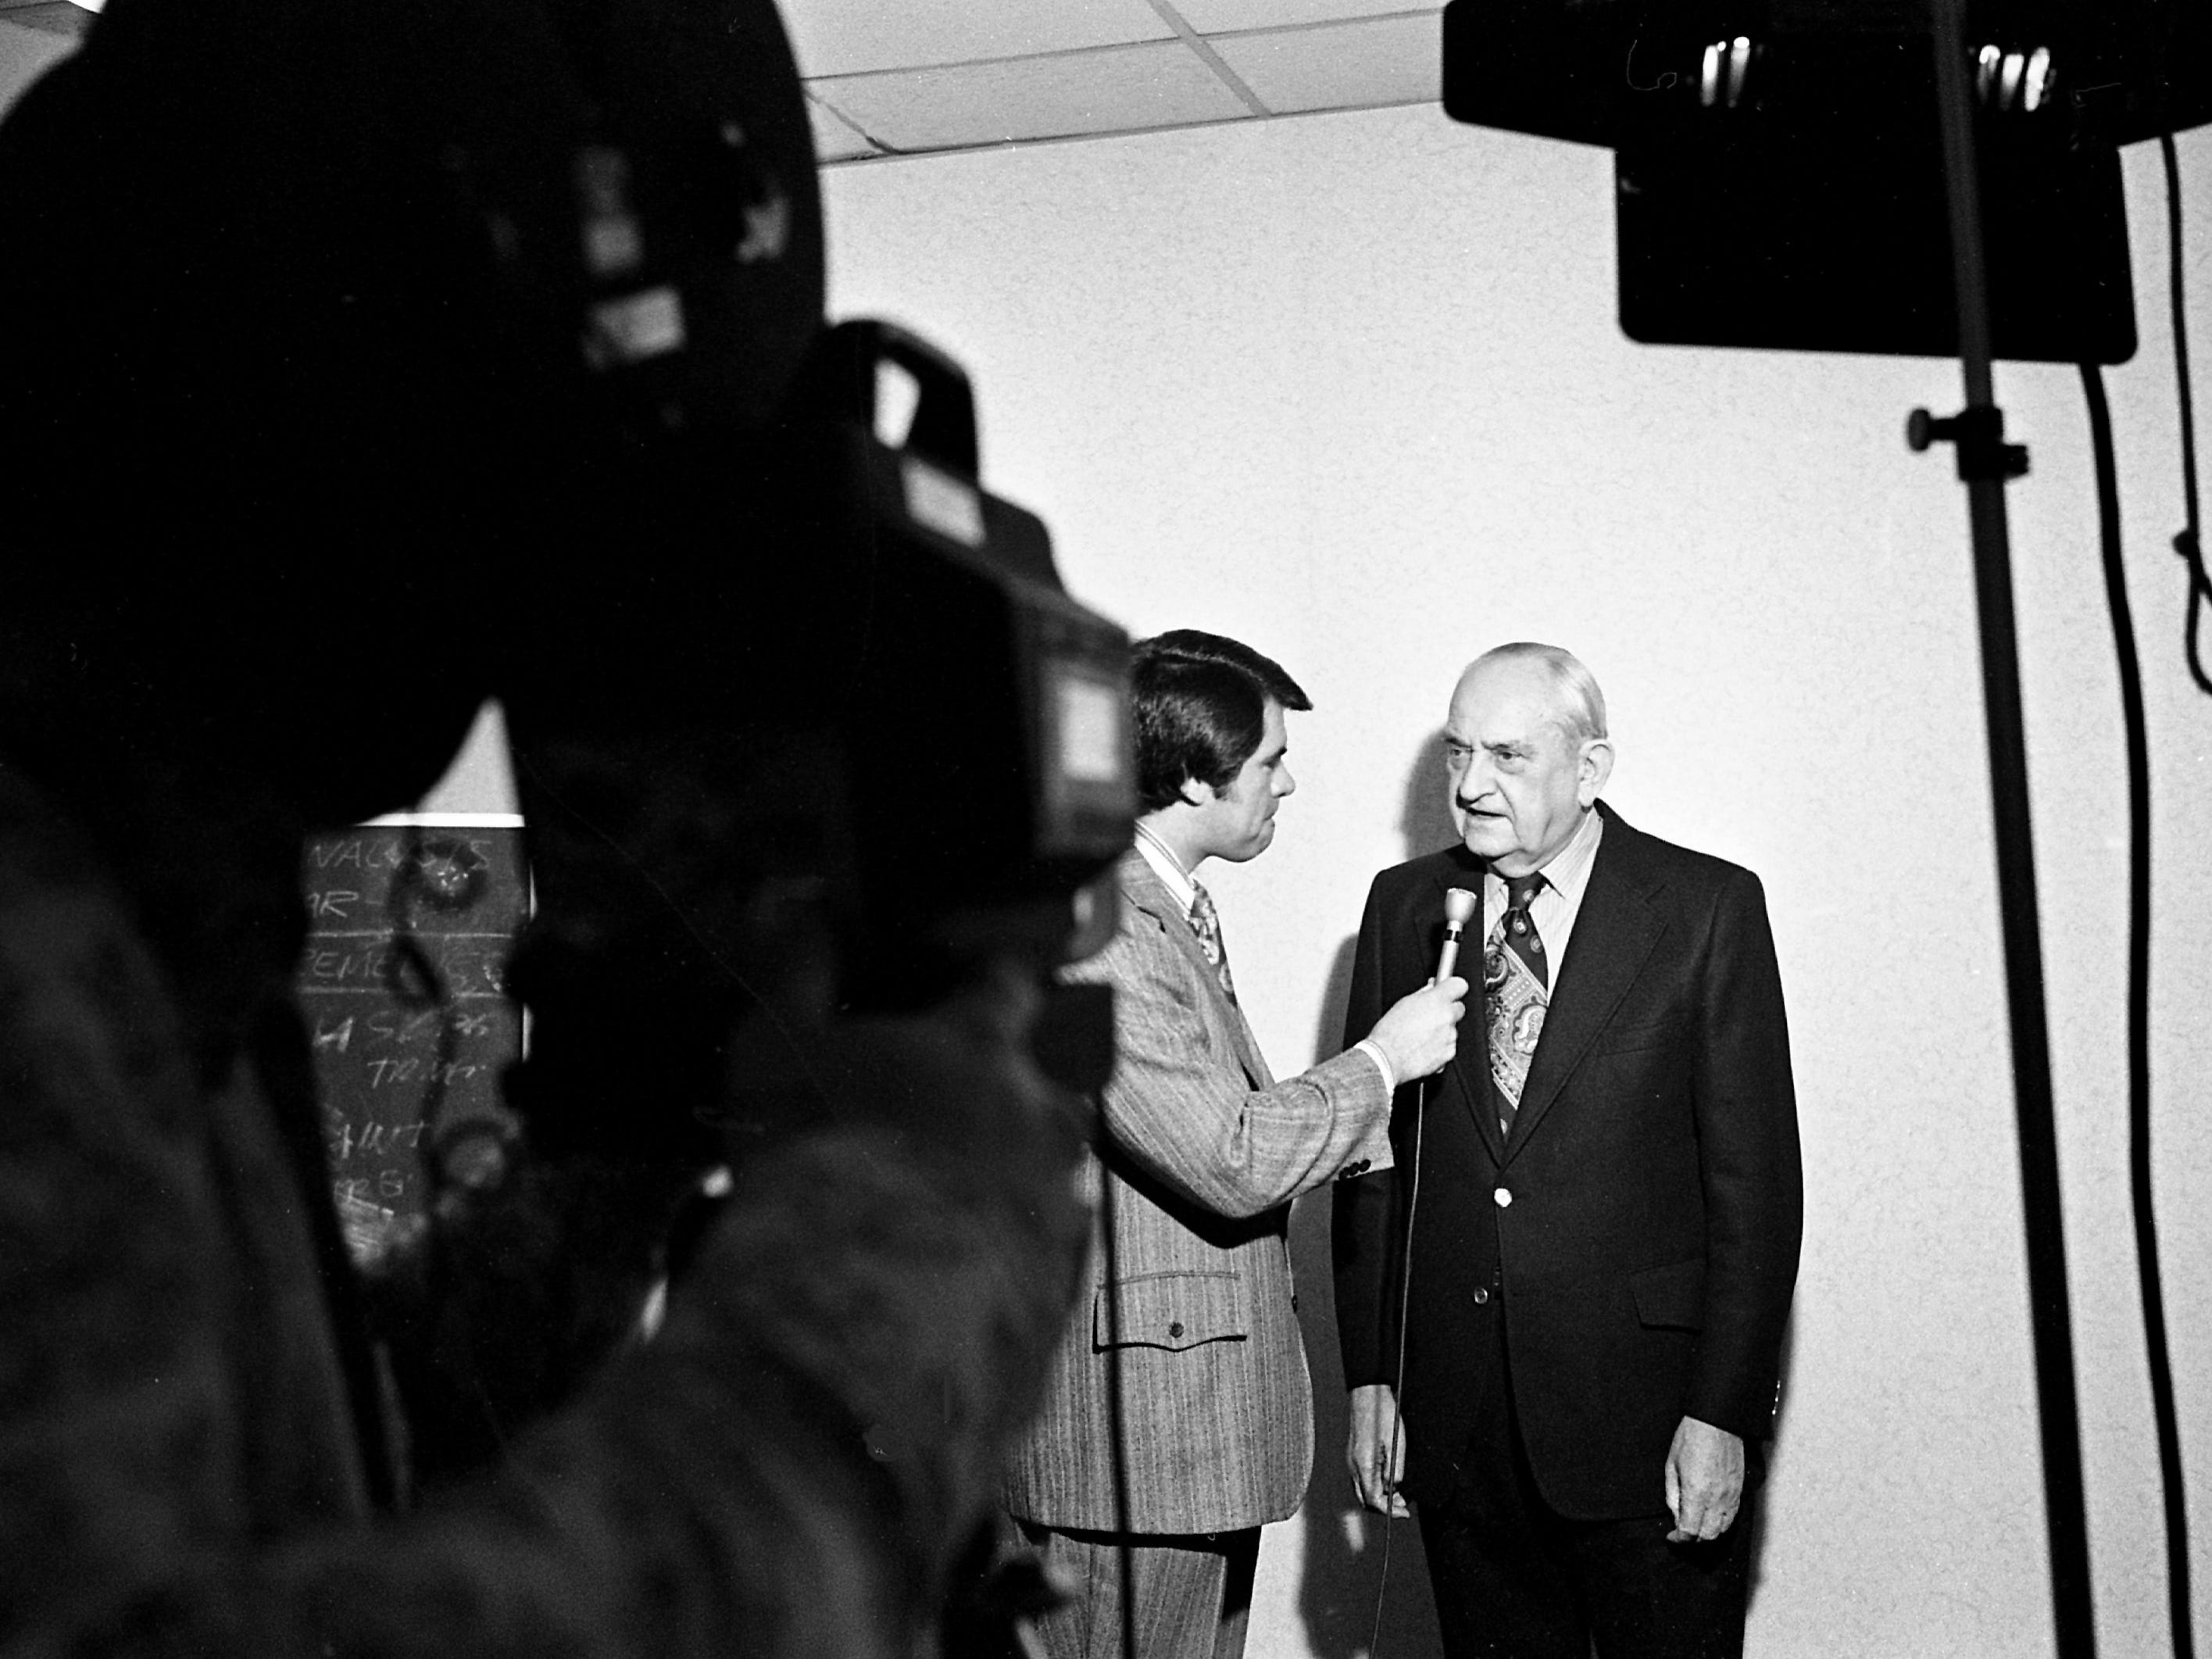 Former Kentucky Coach Adolph Rupp, right, gets interview by Hope Hines of Channel 5 Jan. 22, 1973, while he was in town to be honored by the Vanderbilt Quarterback Club.